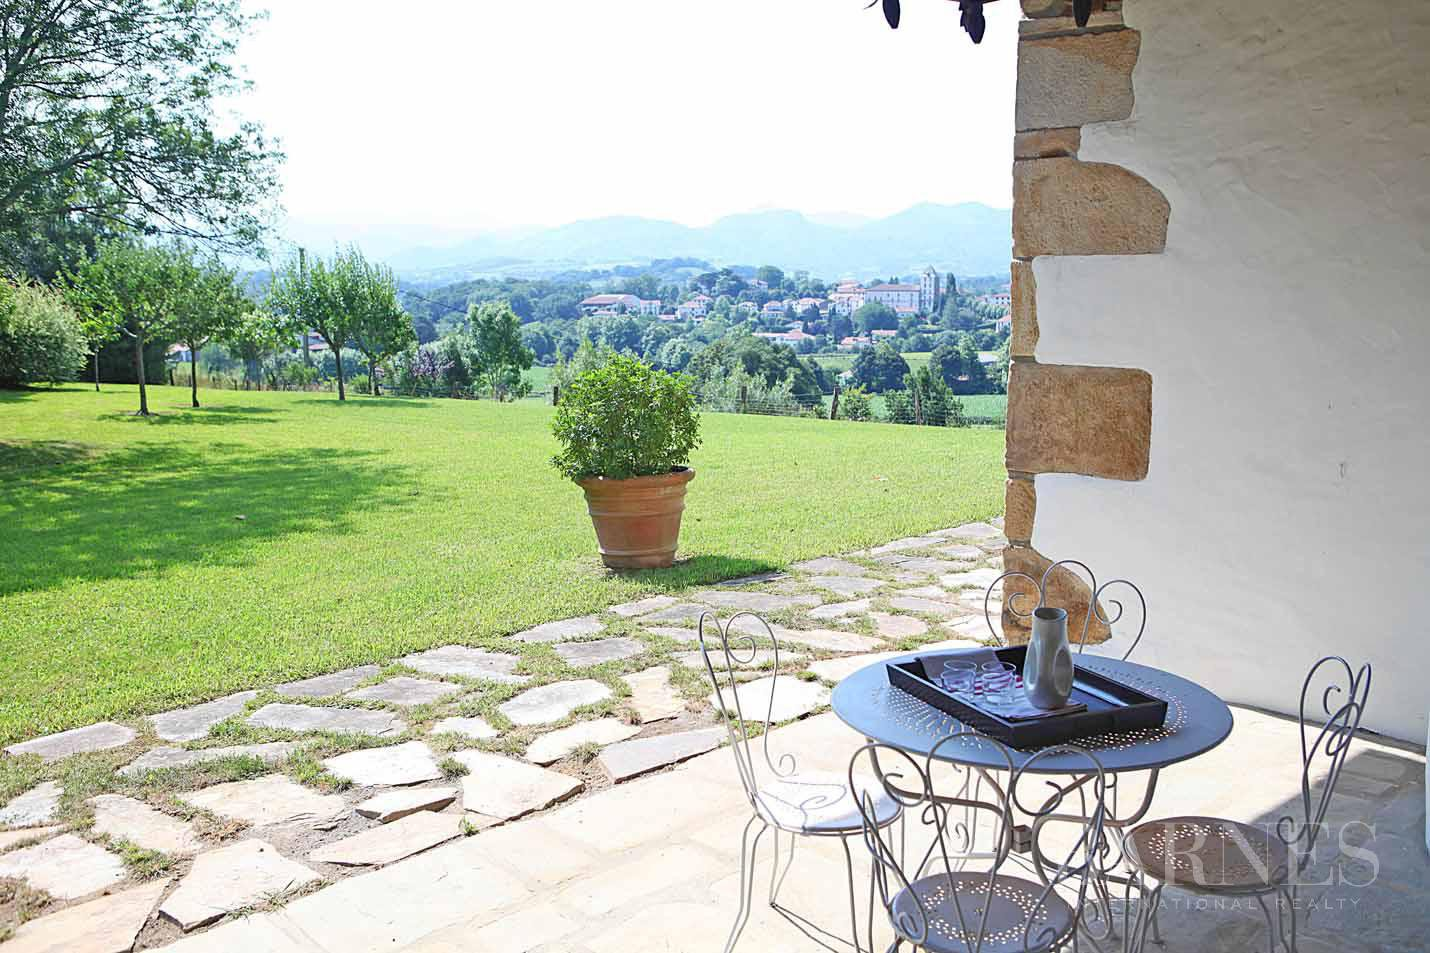 SARE, 20 MINUTES FROM SAINT JEAN DE LUZ, BASQUE STYLE FARMHOUSE WITH HEATED POOL, PANORAMIC MOUNTAIN VIEW picture 3